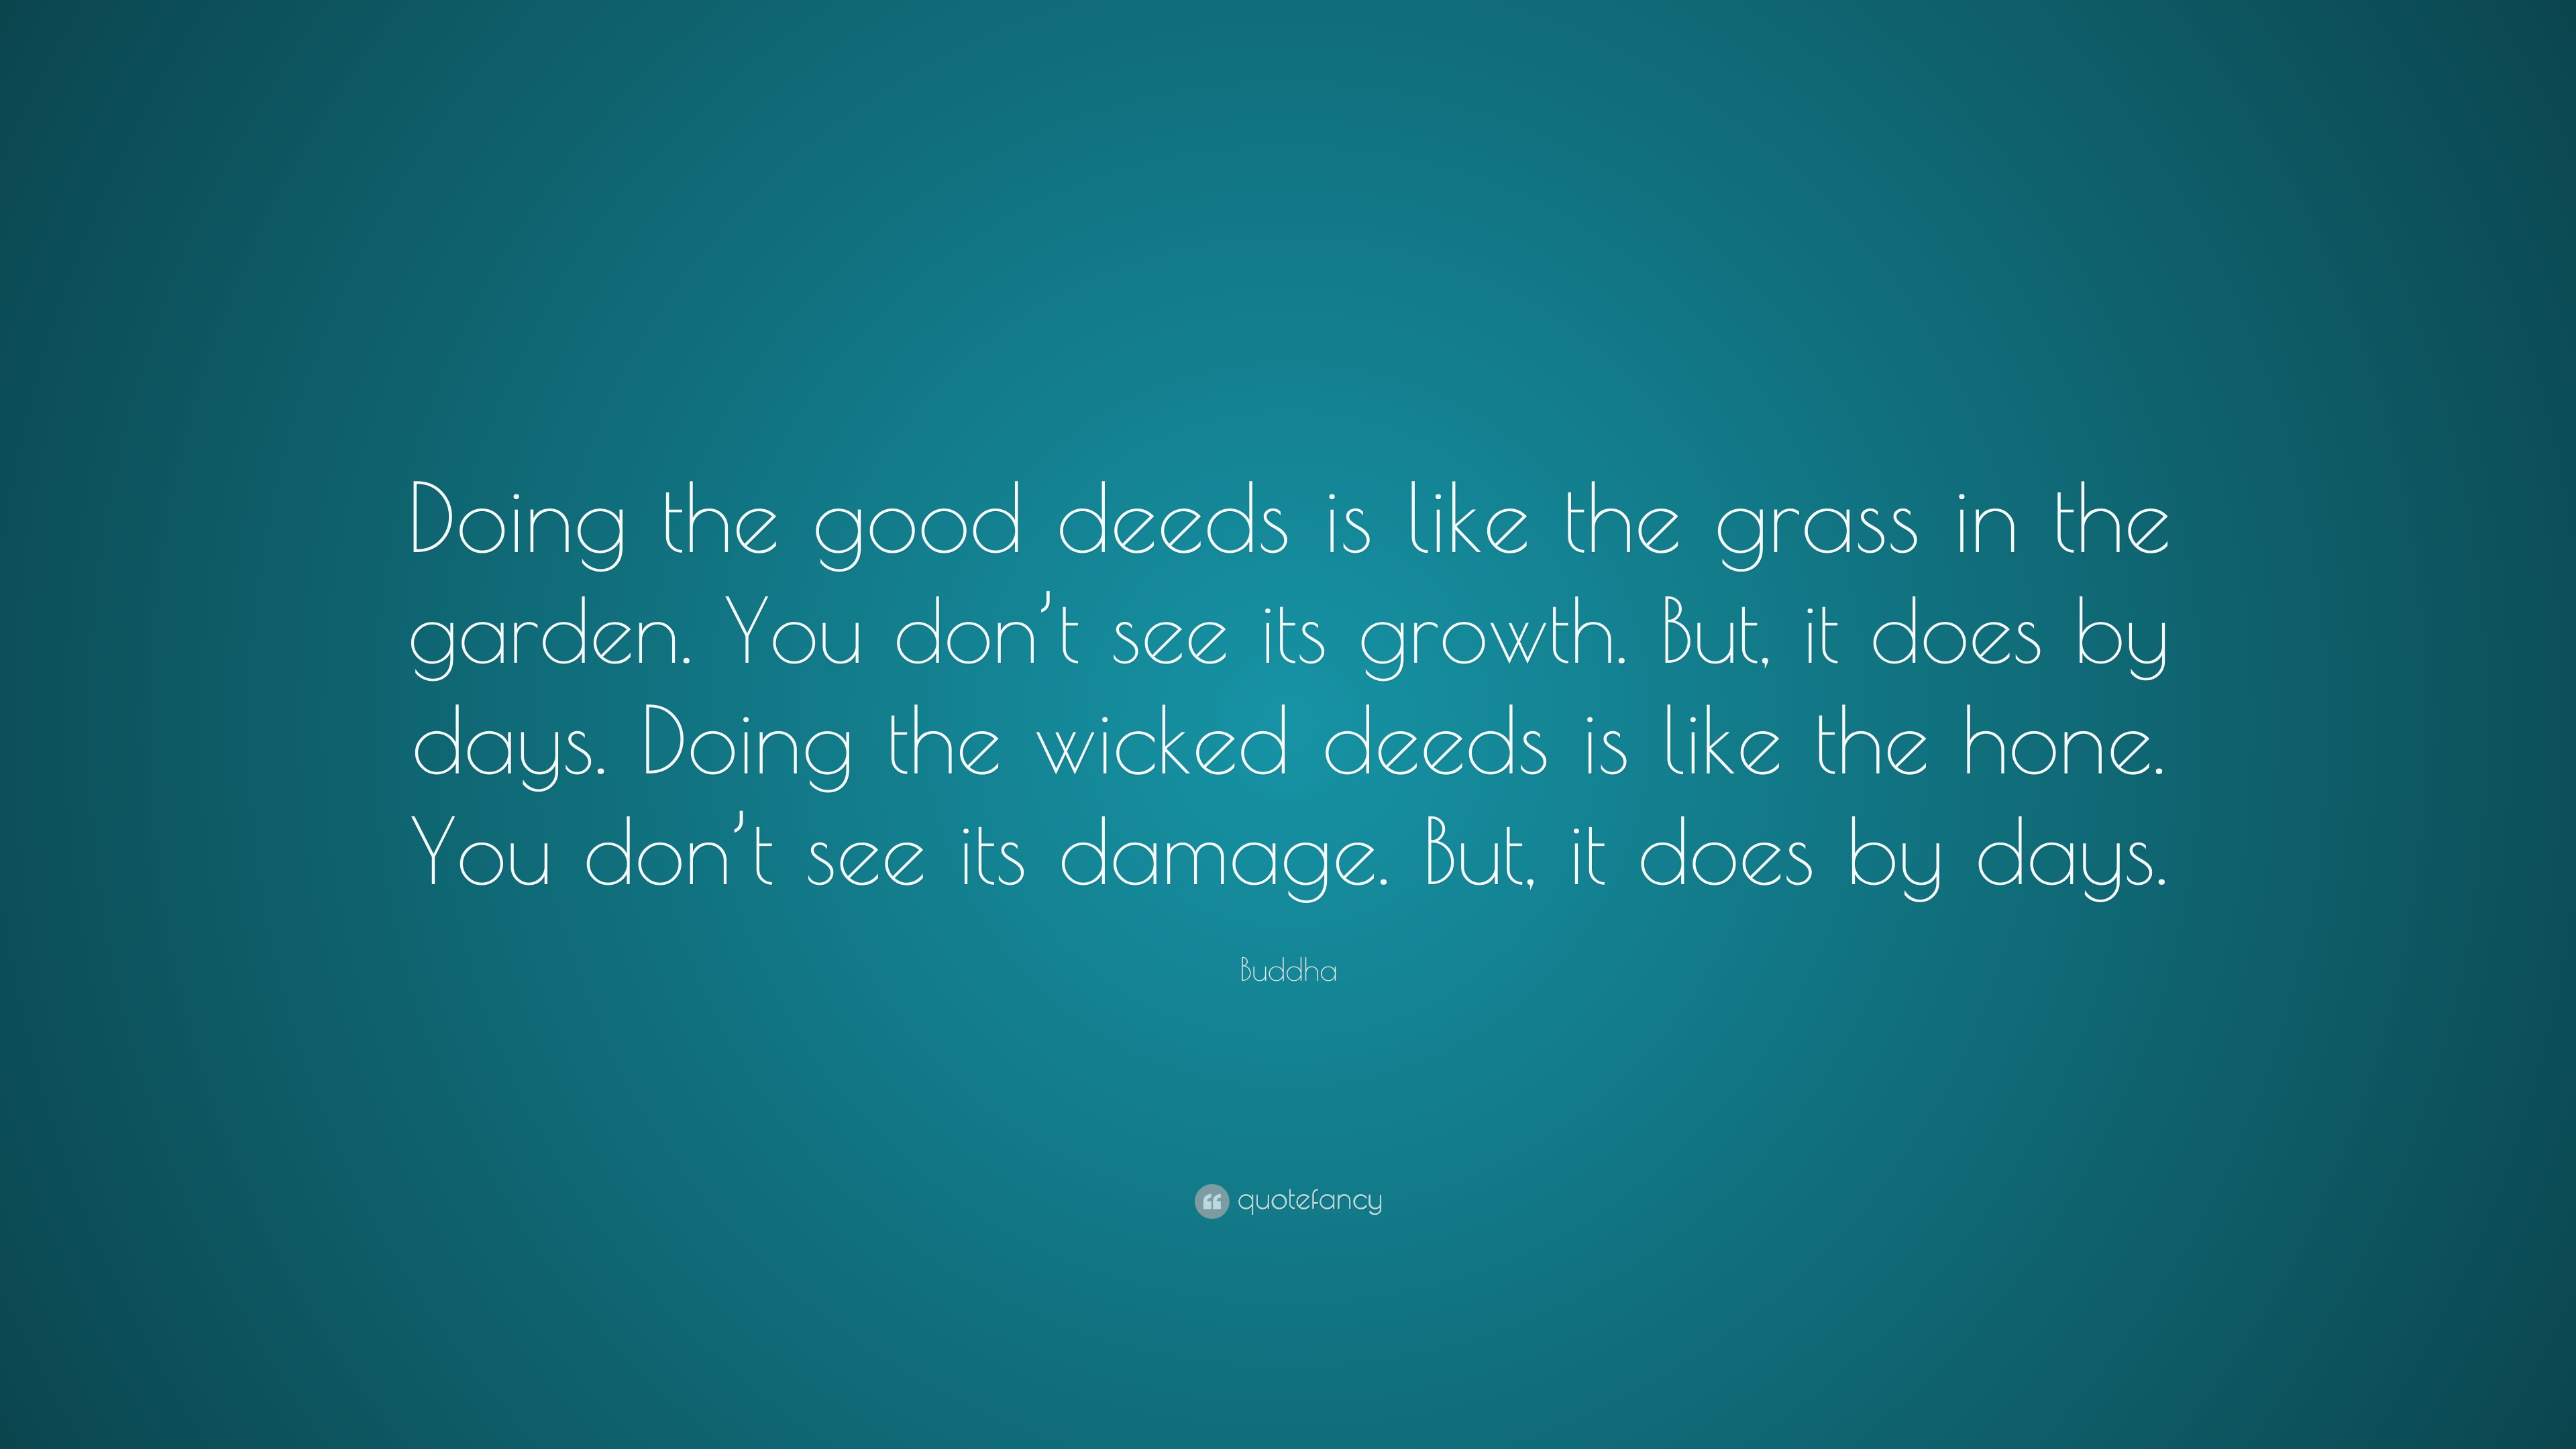 Buddha Quote Doing The Good Deeds Is Like The Grass In The Garden